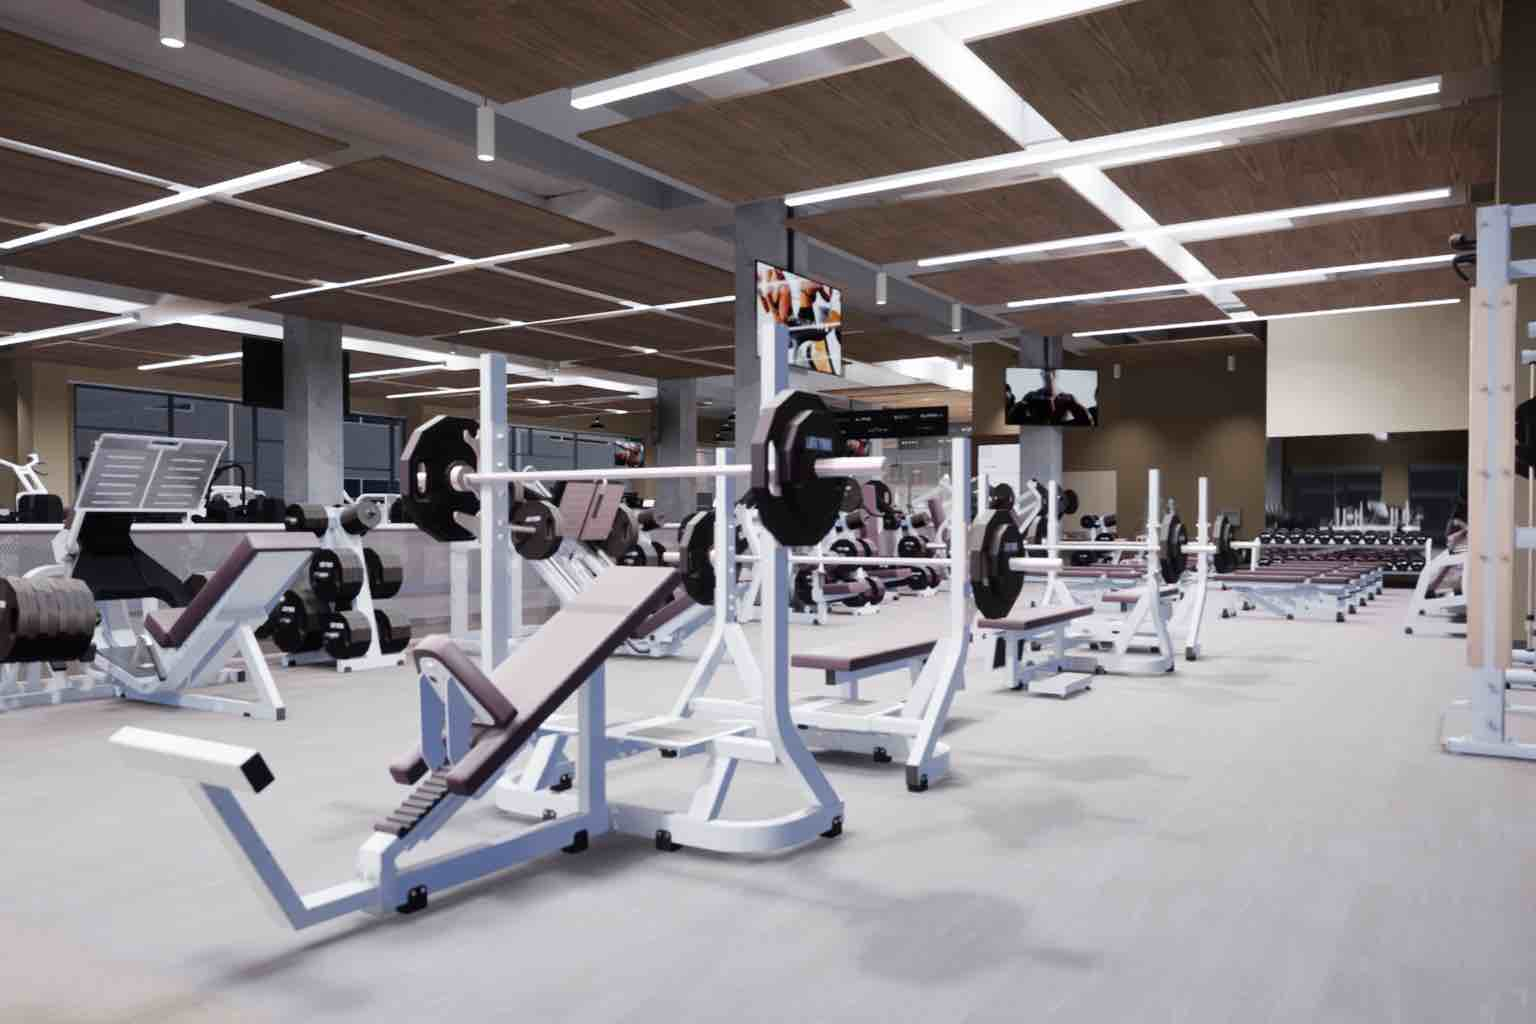 workout machines on the fitness floor